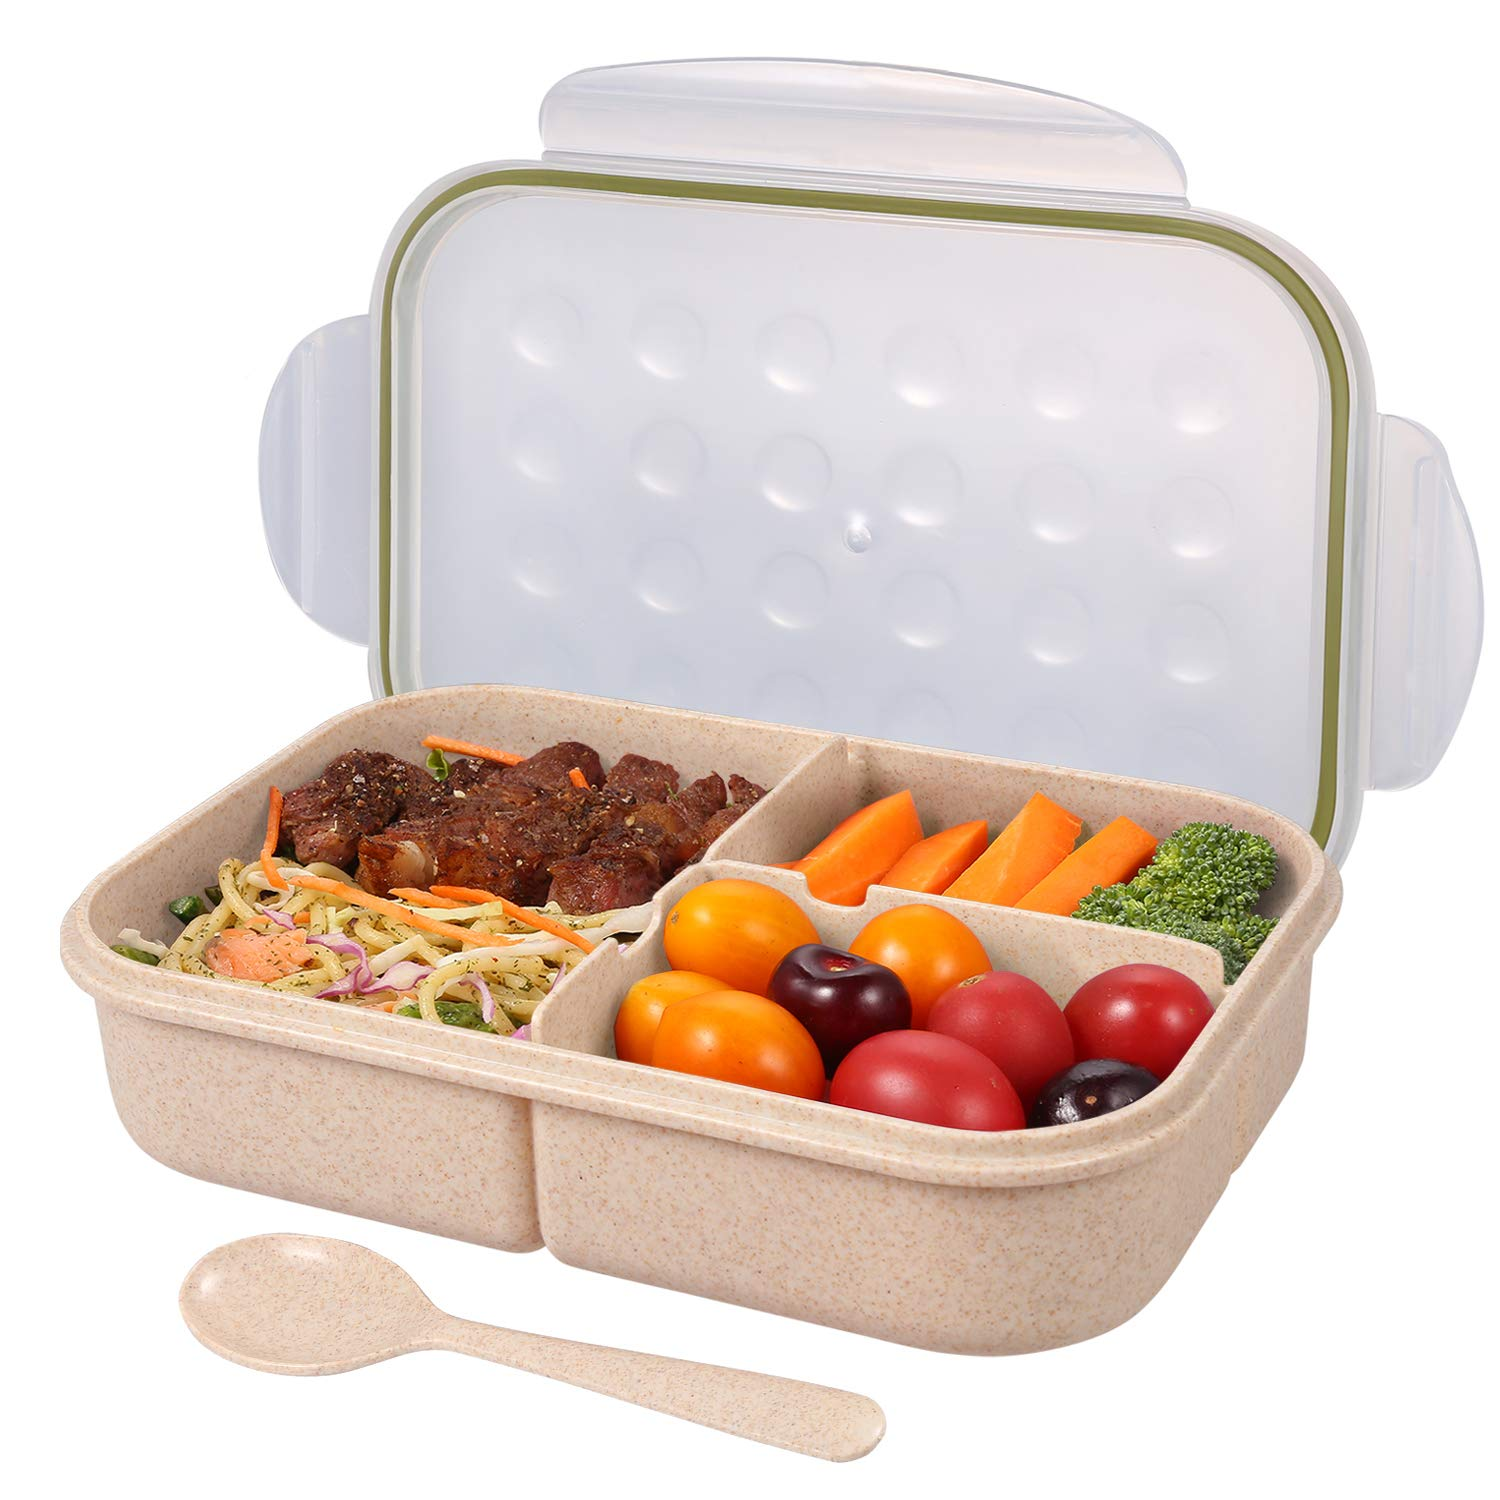 Bento Box for Adults,Lunch Container for Kids,3 Compartments Portion Lunch Box ,Food-Safe Materials,BPA-free,Leak-proof (Includes Spoon, Purple) Leak-proof (Includes Spoon